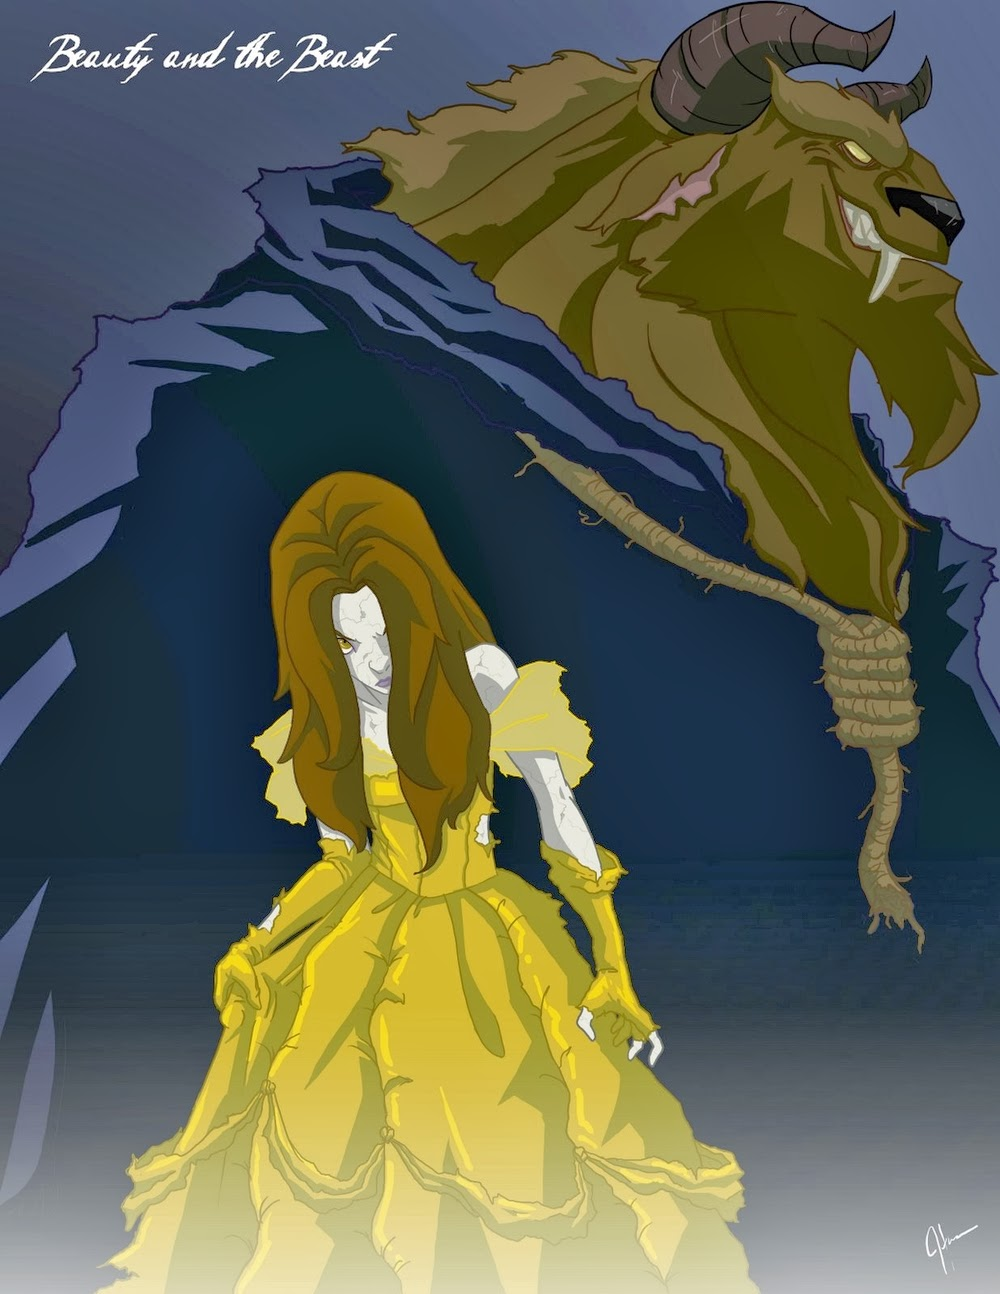 04-Belle-Beauty-and-the-Beast-Jeffrey-Thomas-Twisted-Princess-www-designstack-co